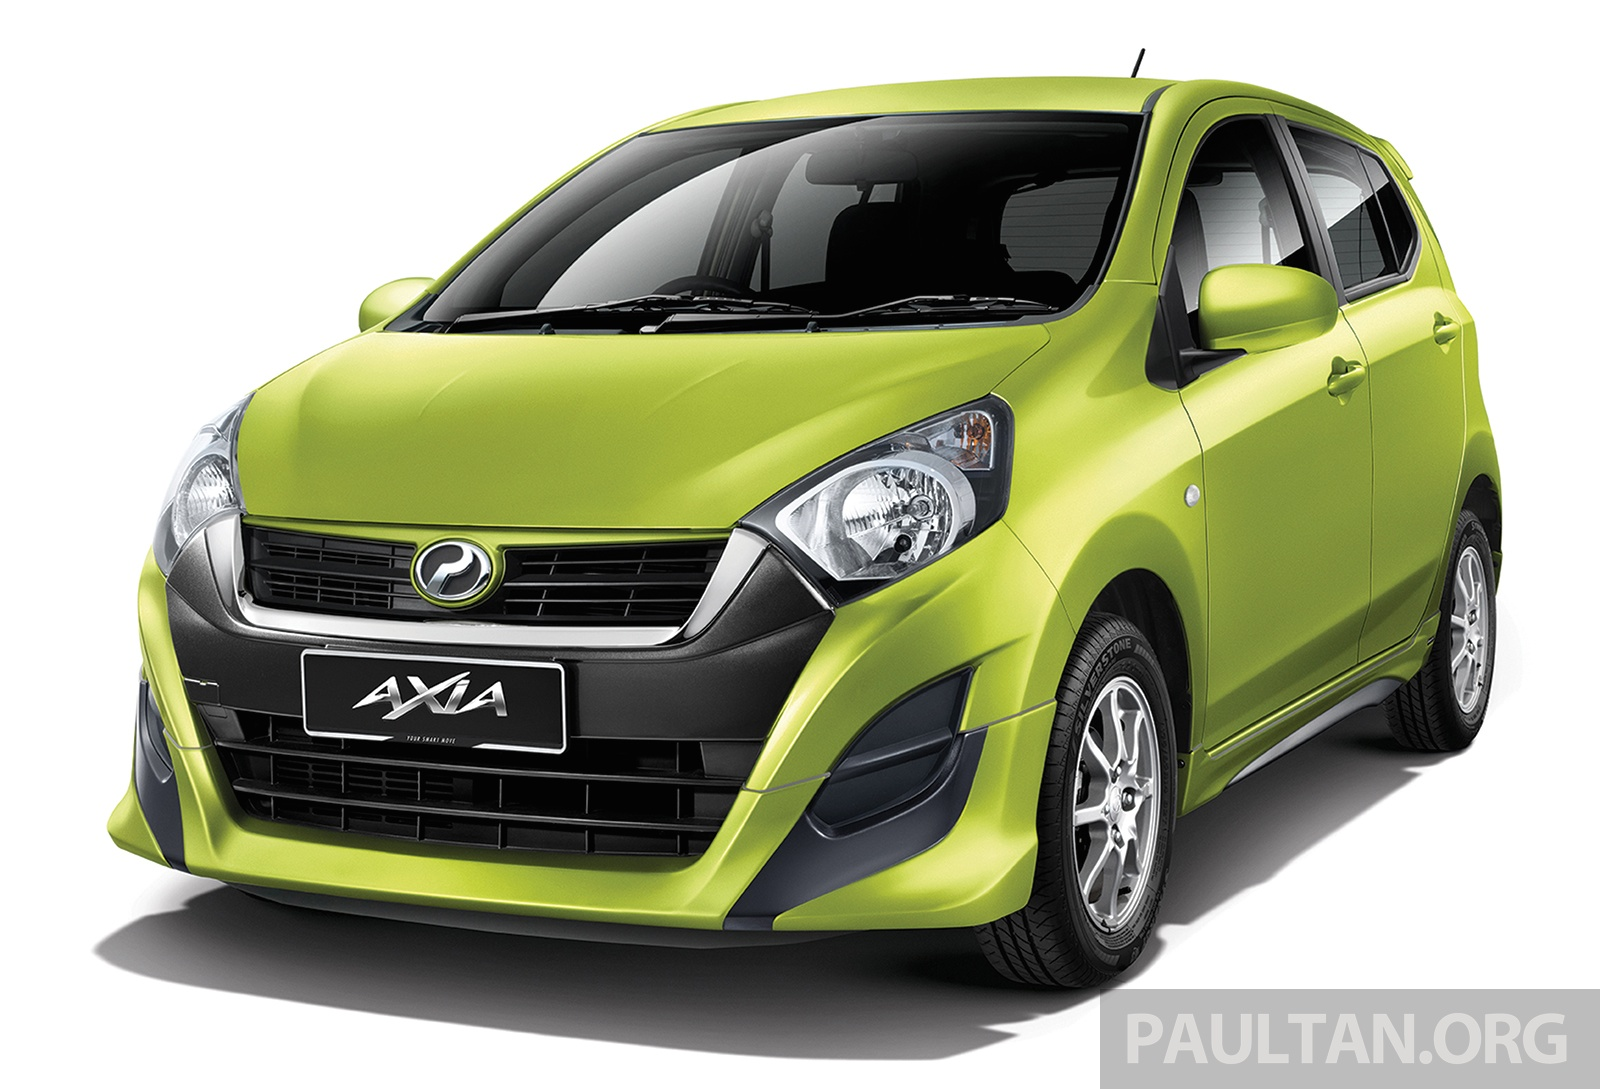 Perodua launches GearUp bodykit and accessories for both